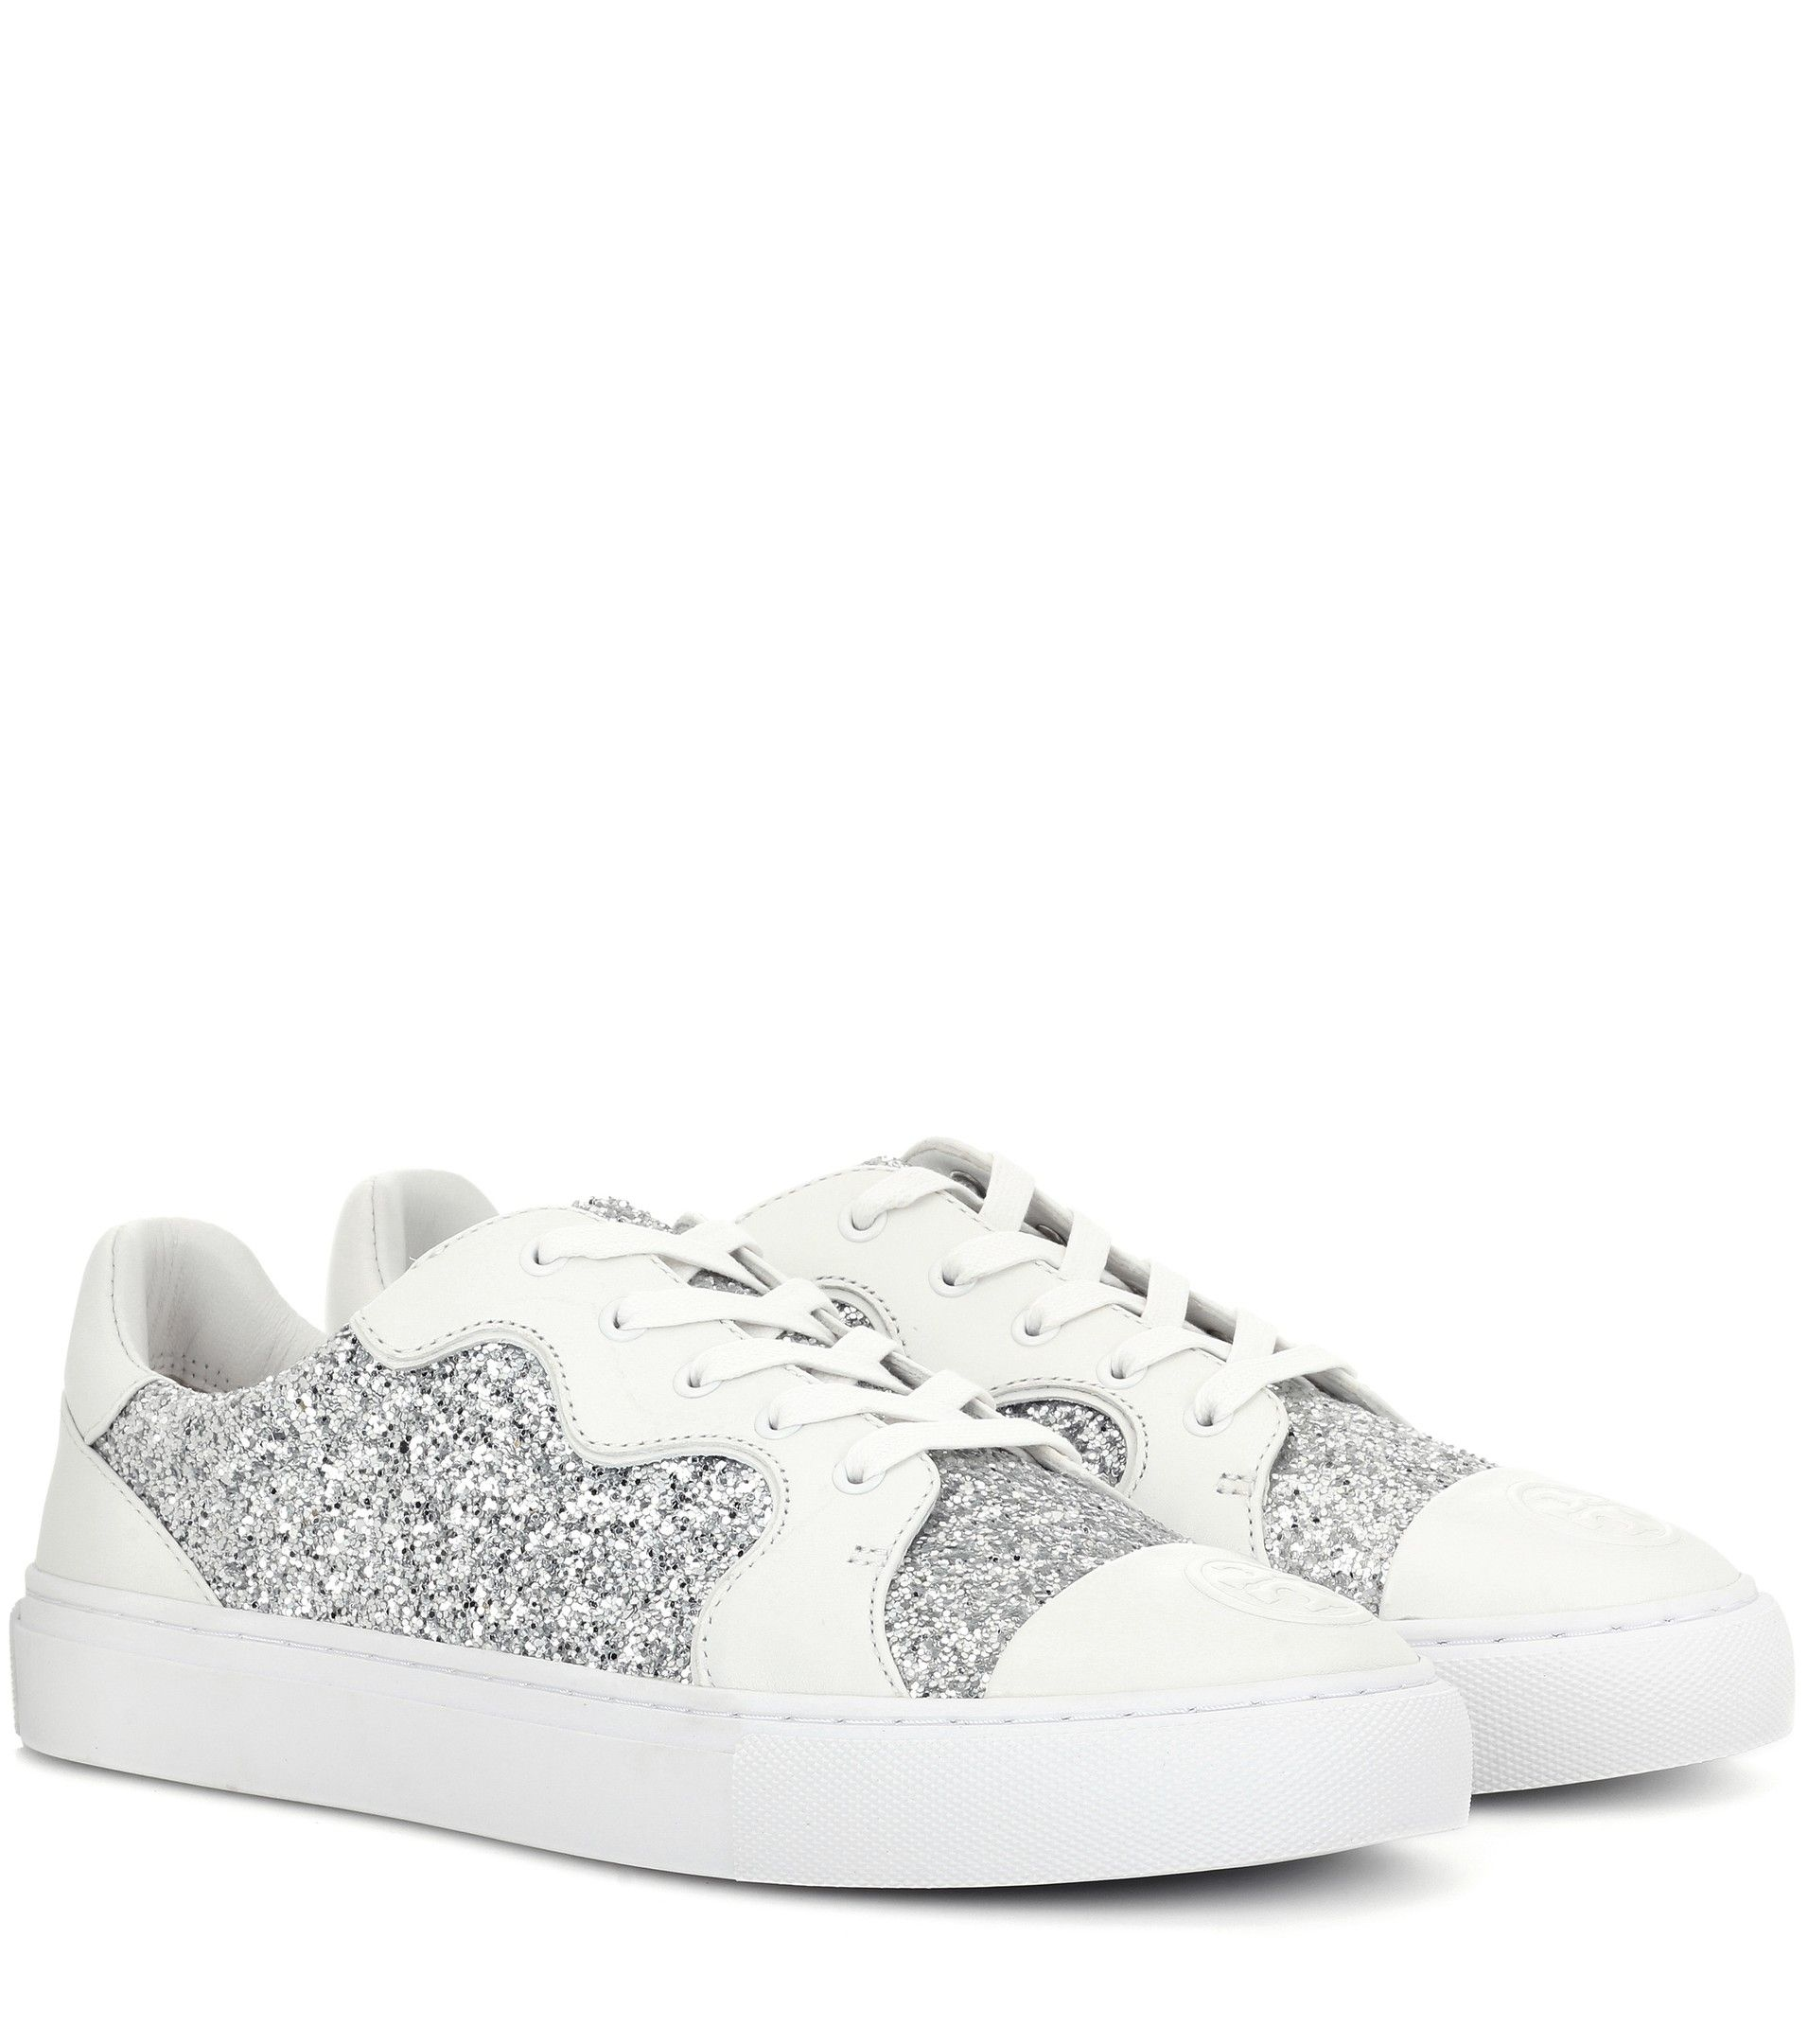 Milo glitter and leather sneakers